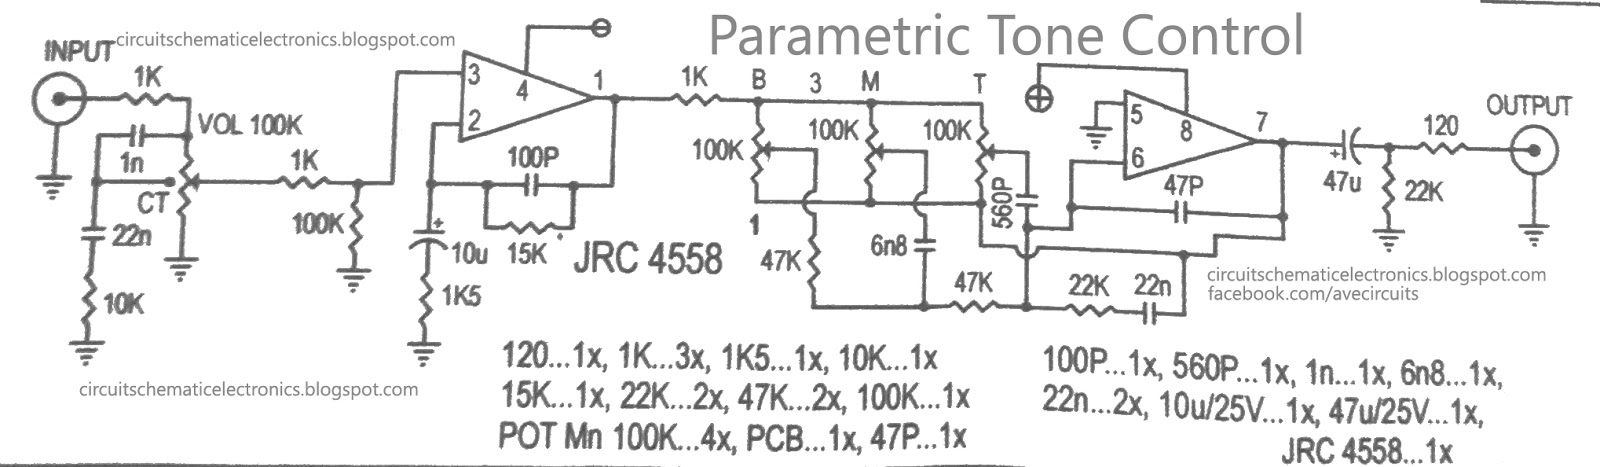 Parametric Tone Control IC4558 and PCB - Electronic Circuit